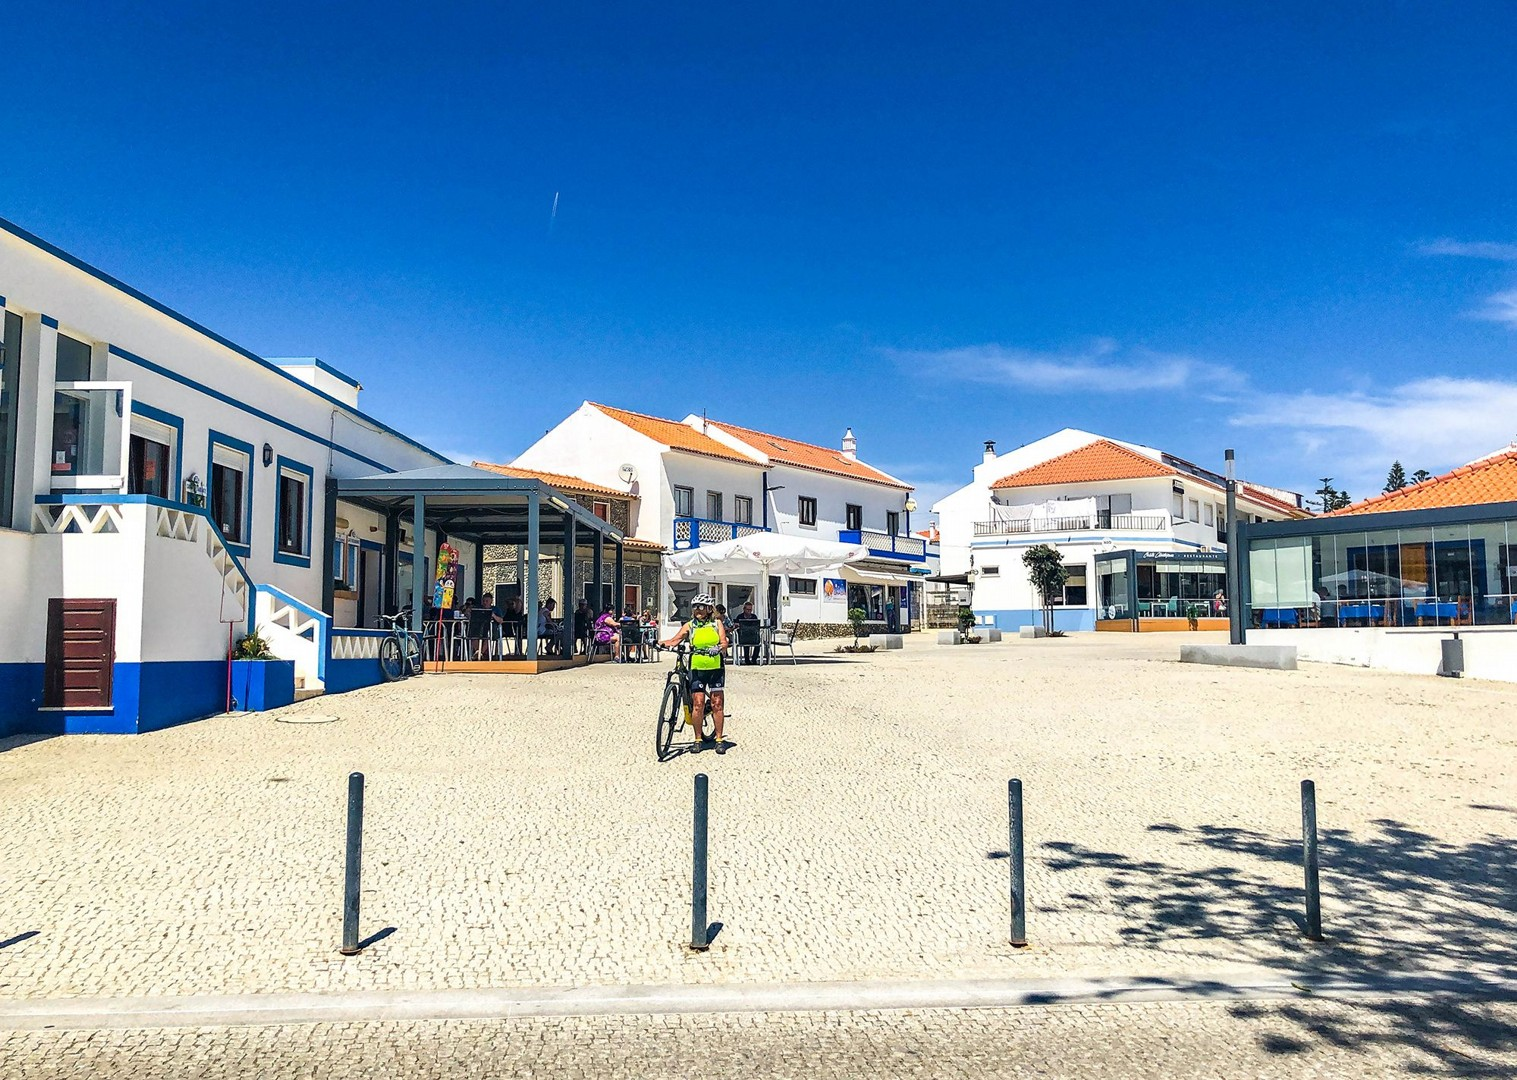 cycling-portugal-holiday-self-guided-saddle-skedaddle-holidays.jpg - Portugal - Alentejo and Algarve Coastal Explorer - Self-Guided Leisure Cycling Holiday - Leisure Cycling